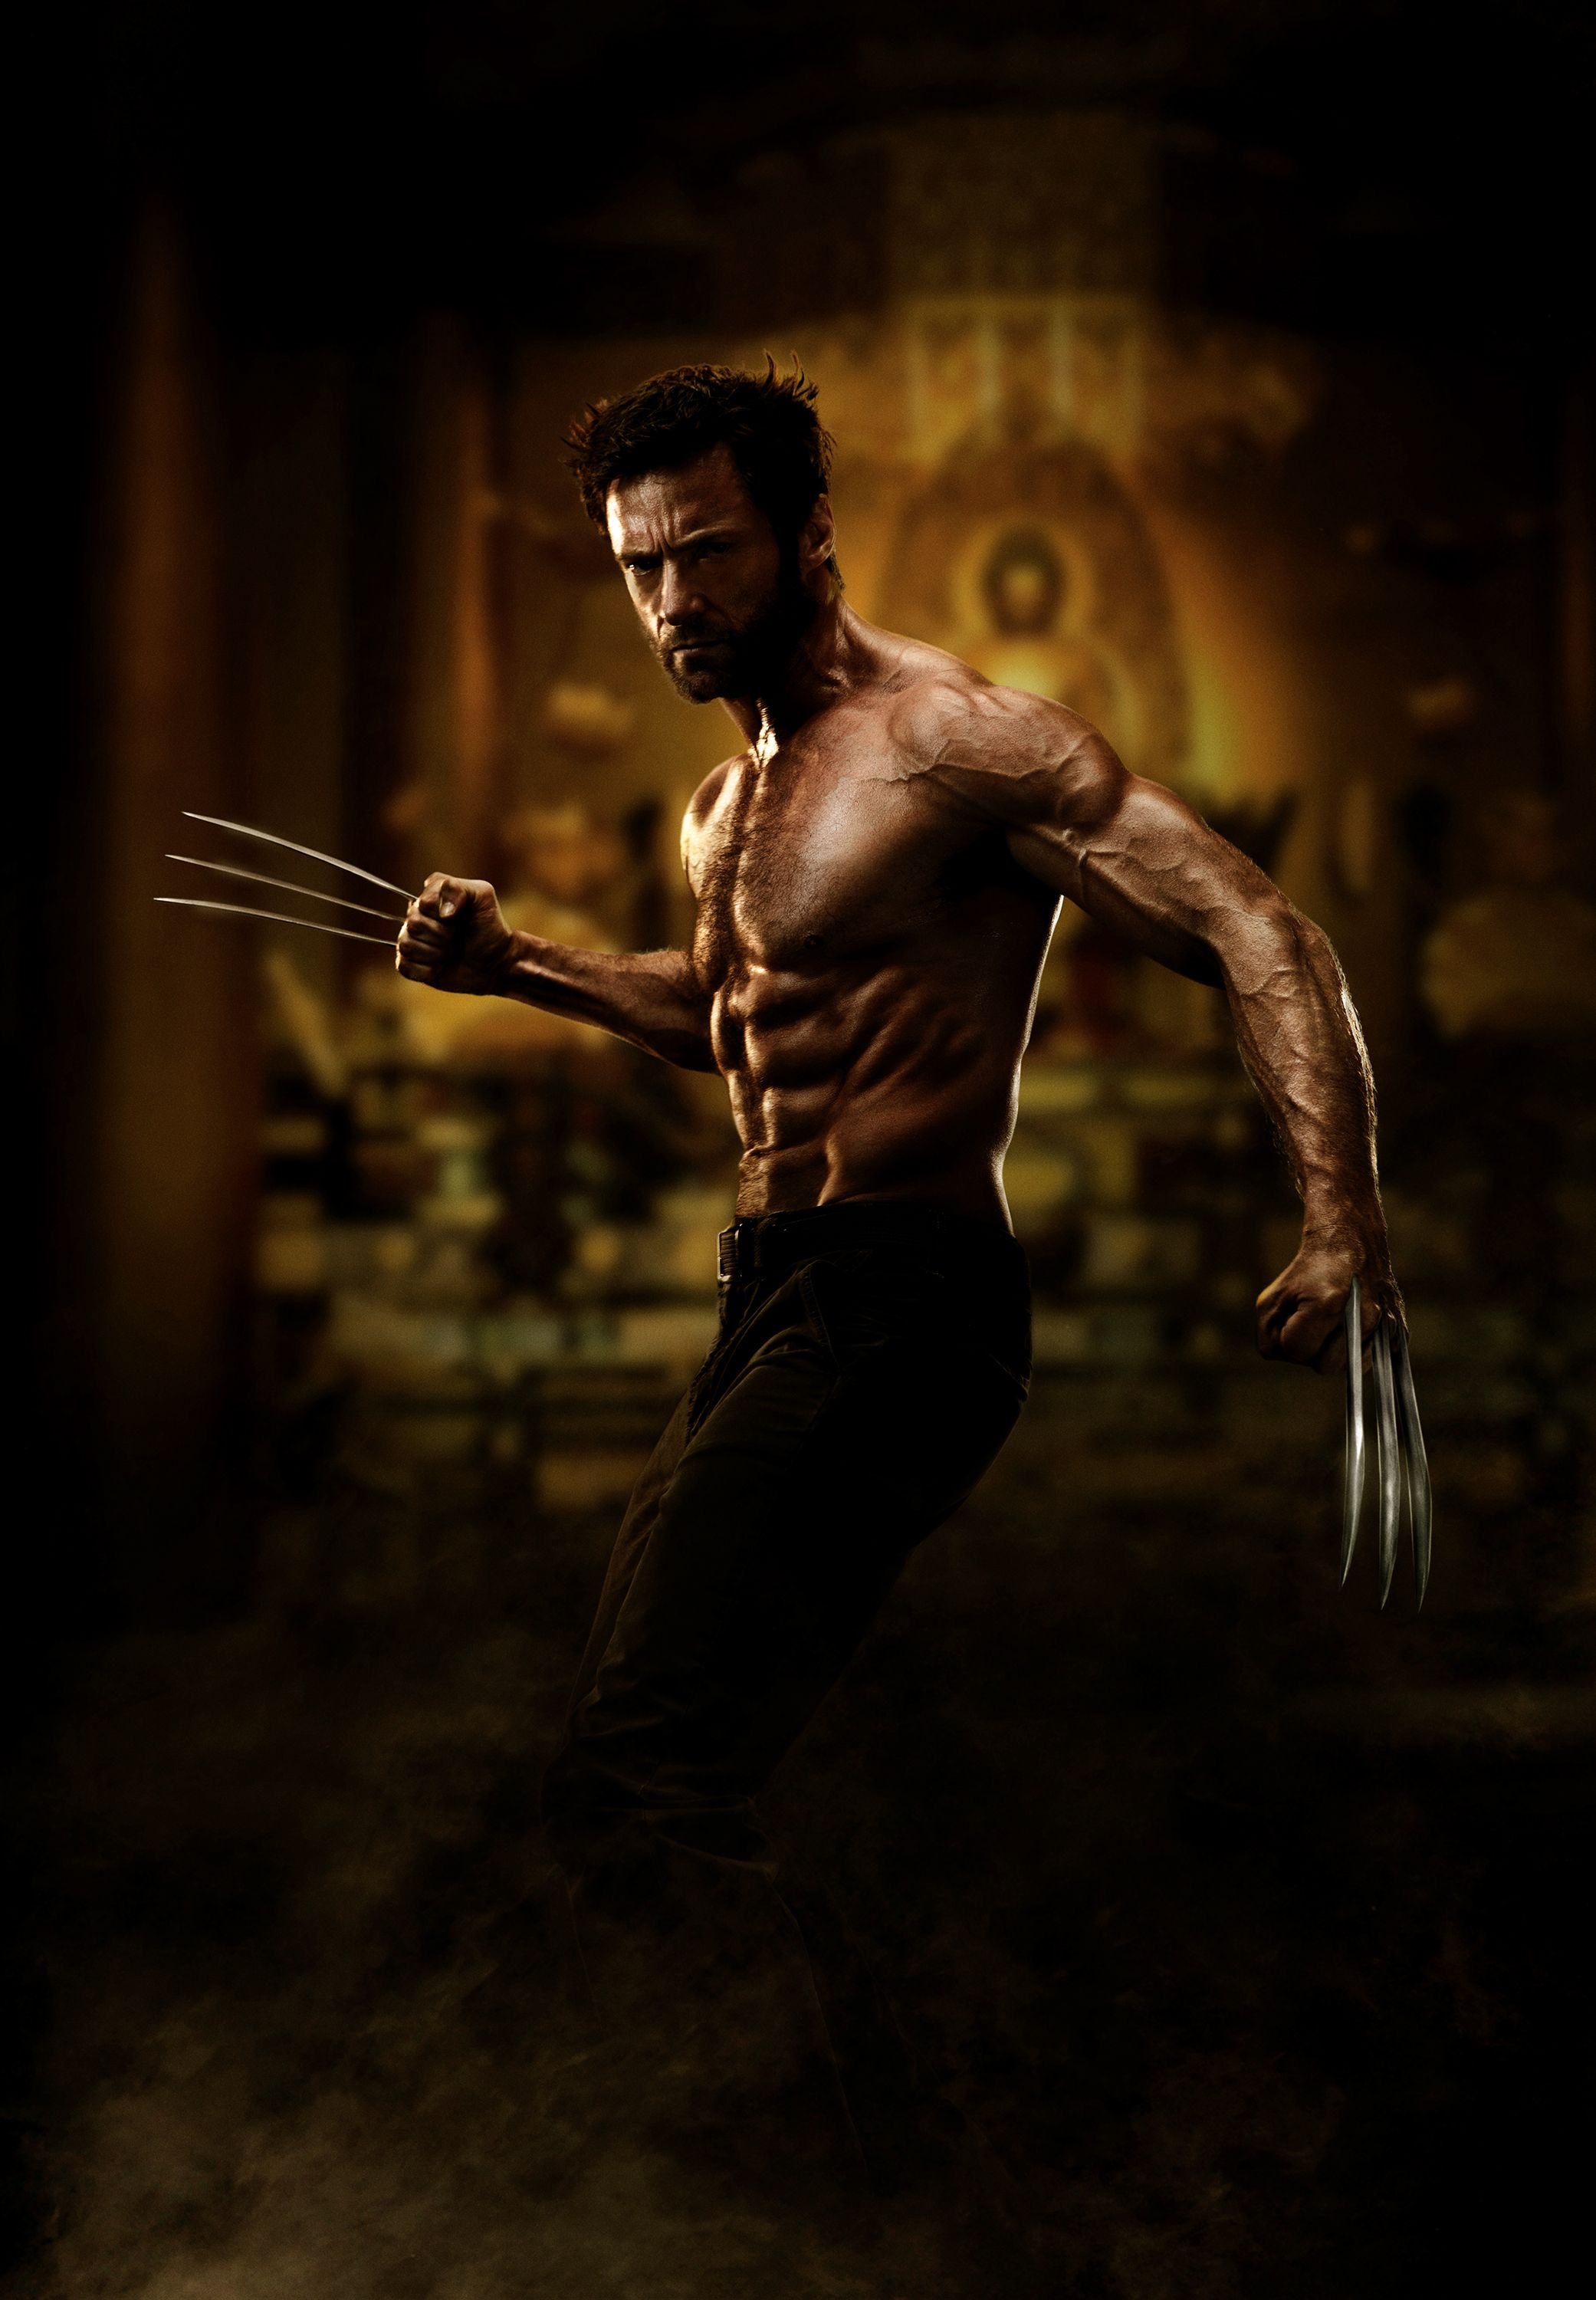 A First Look At The Wolverine 2013 Wolverine Movie Hugh Jackman Shirtless Wolverine Hugh Jackman